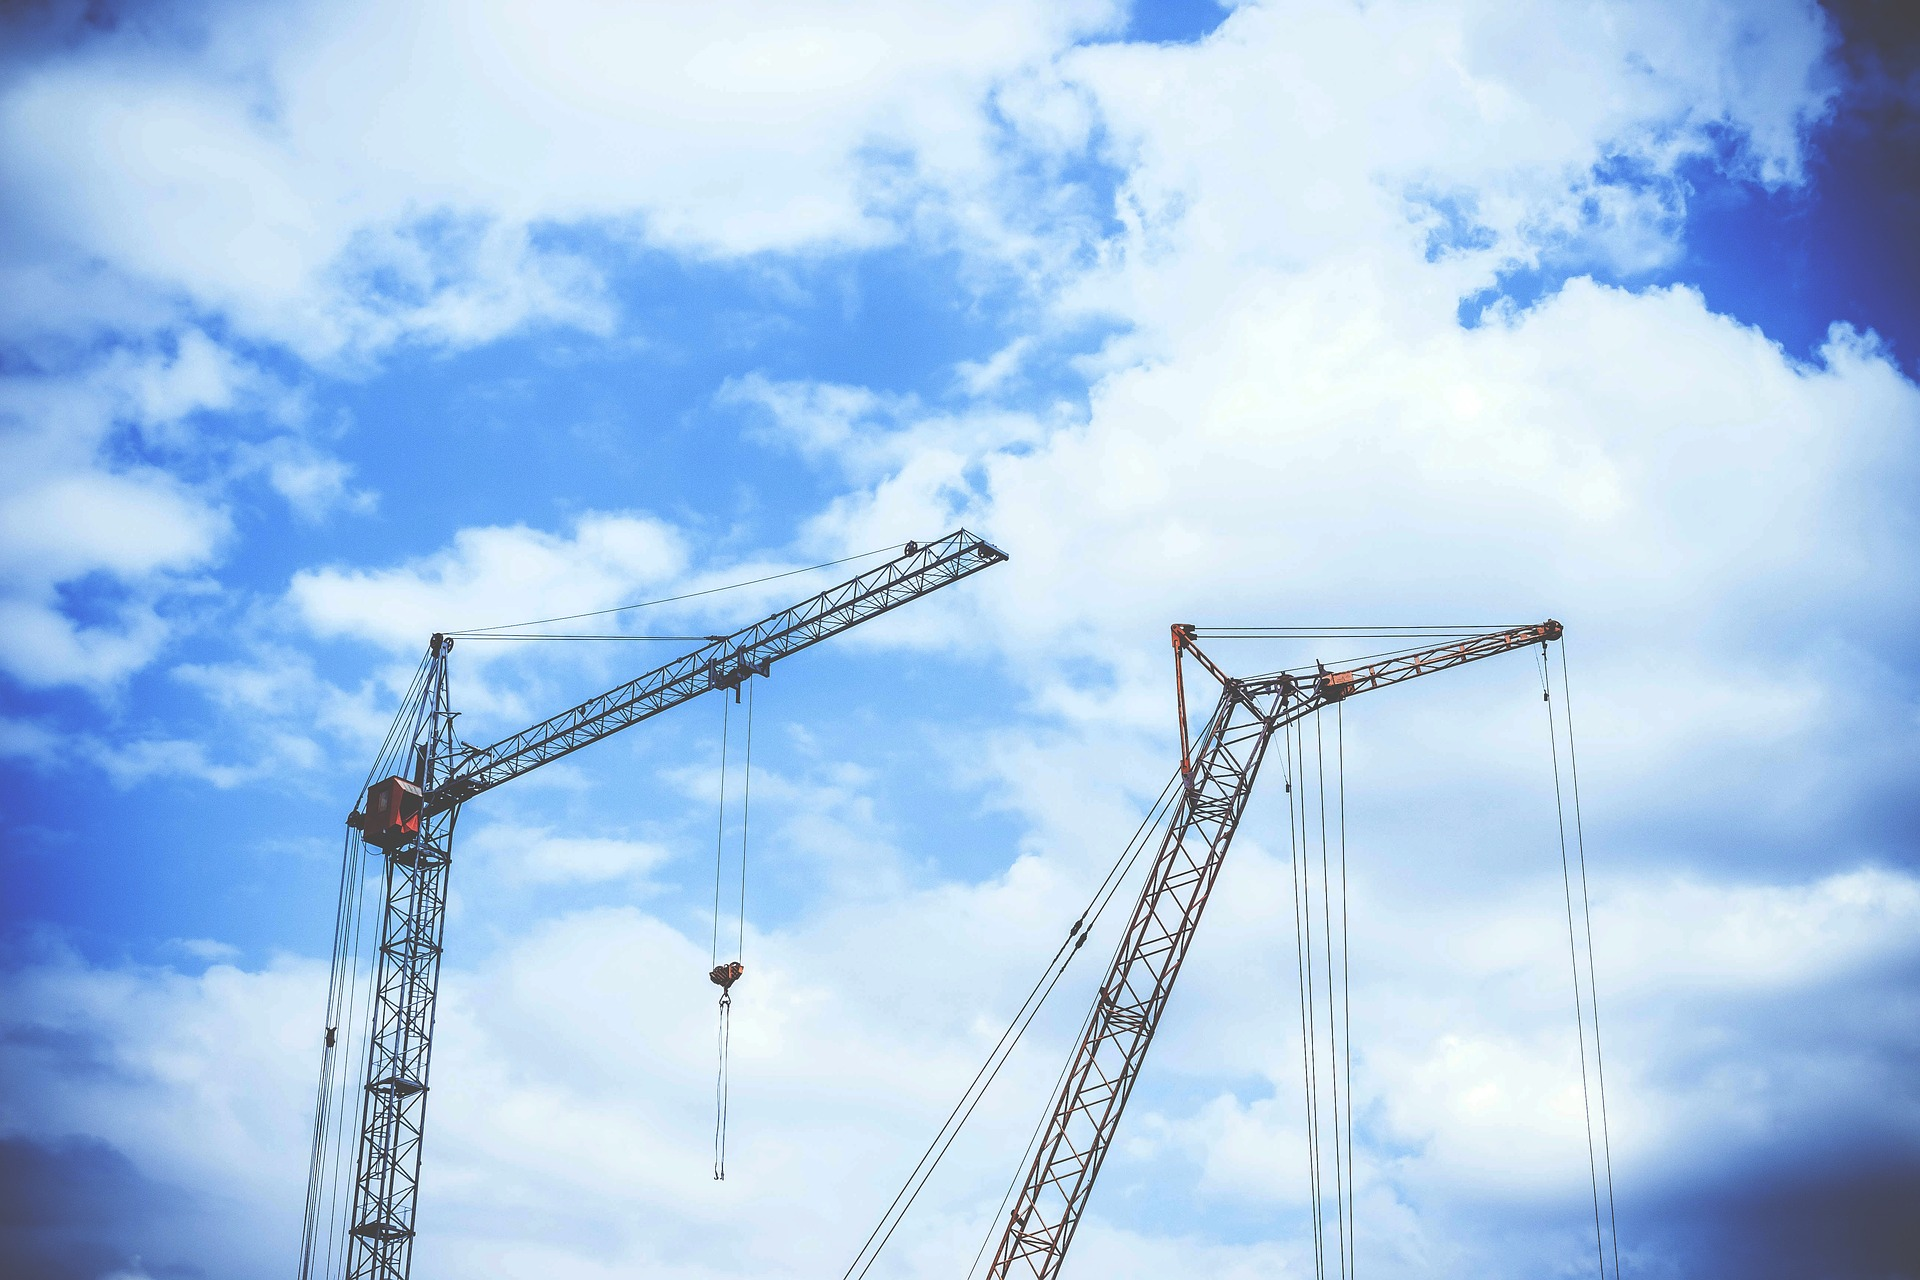 US construction backlog indicator rises in August